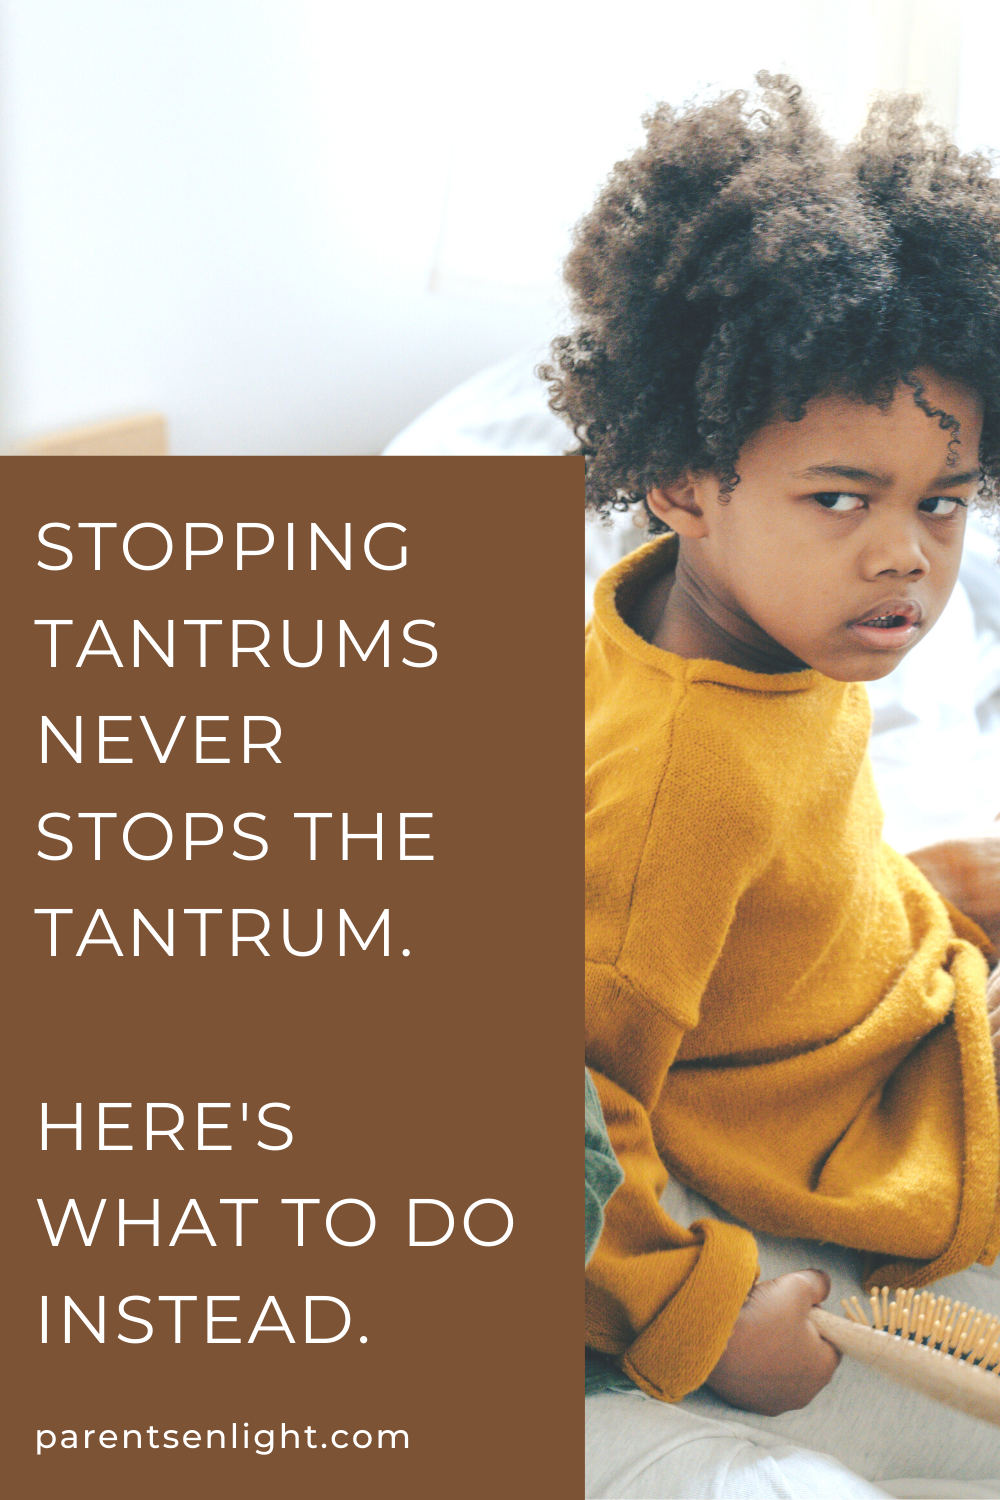 How often do your attempts to stop the tantrum actually stop the tantrum? And how often does it get ten times worse? Here's what to do instead and decrease tantrum occurrences and their duration. And there's a massive tip waiting for you inside :) #tantrums #stoptantrums #children'sbehaviour #children'sbigfeelings #raisinghappykids #emotioncoachingchildren #children'sbehavior #parenting #attachmentparenting #nvc #parentinghelp #positiveparenting #positivediscipline #positiveparentingtips #parentingtips #mindfulparenting #mindfulness